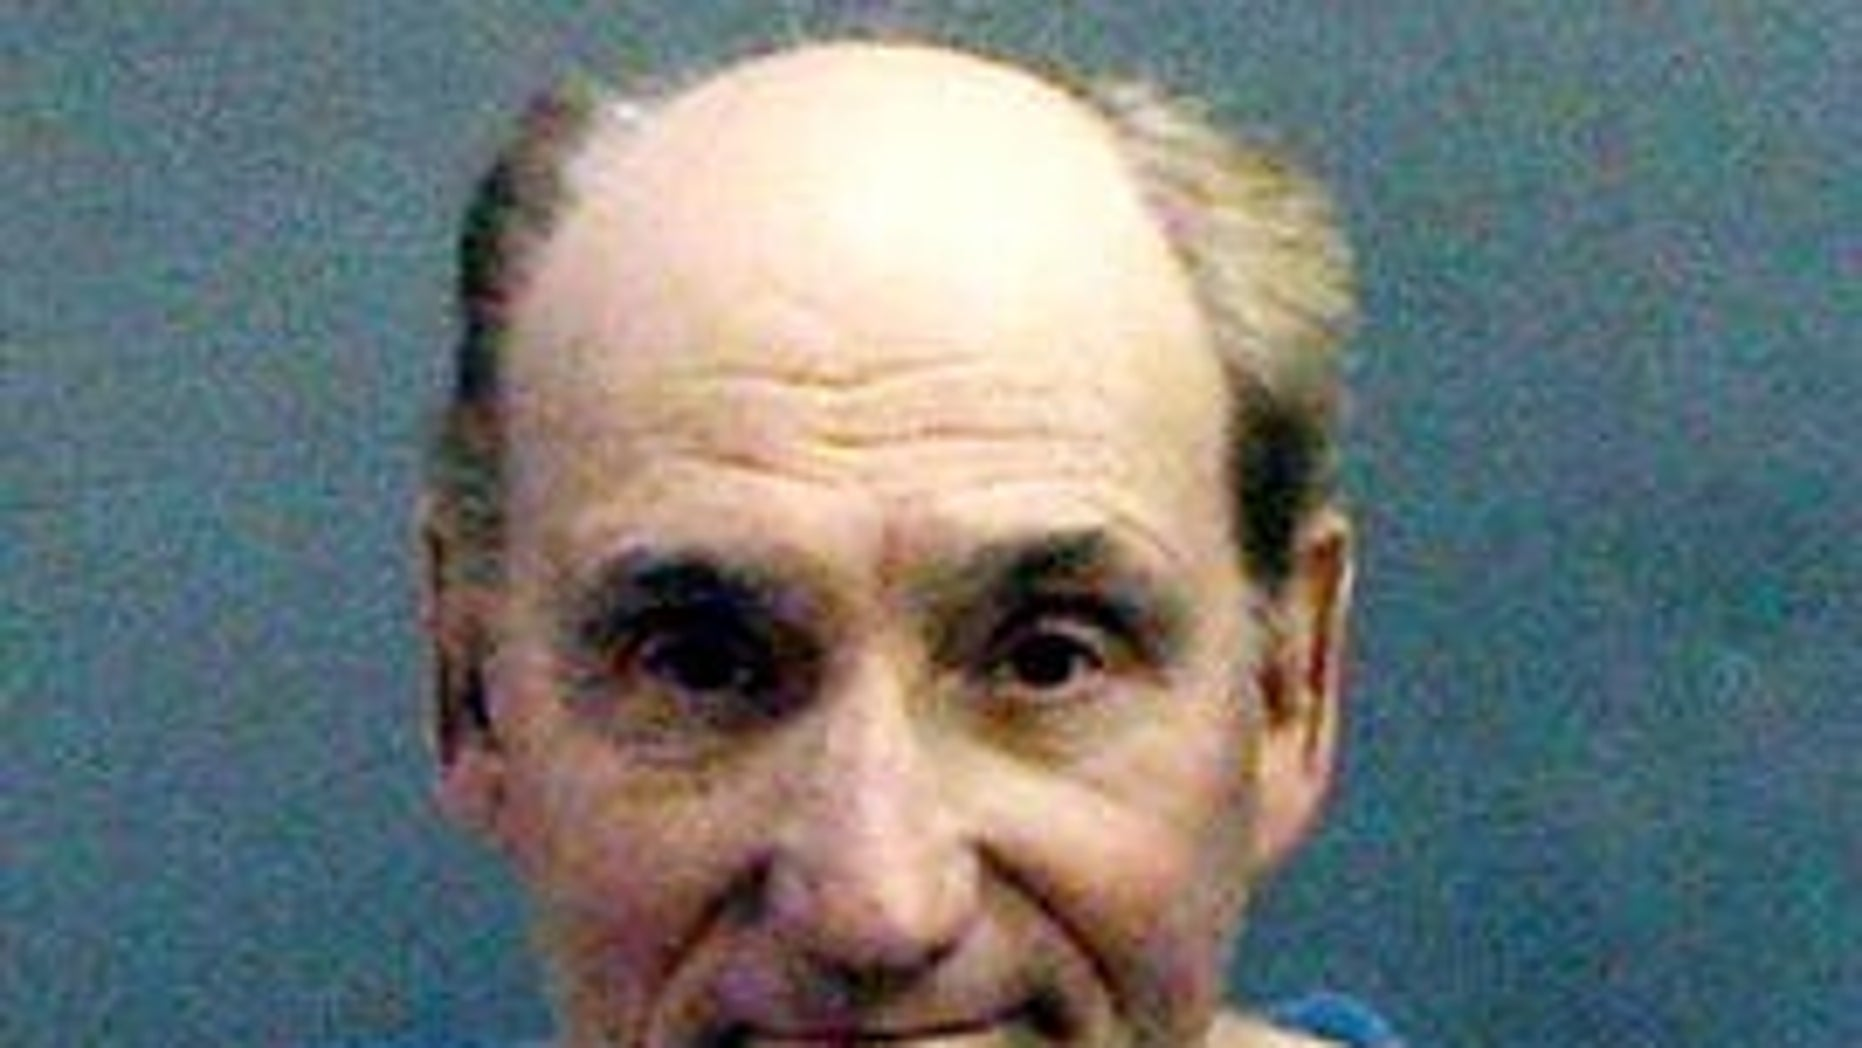 Stanwood Ellkus was sentenced to prison for killing a urologist he claimed botched his surgery, leaving him with erectile dysfunction.